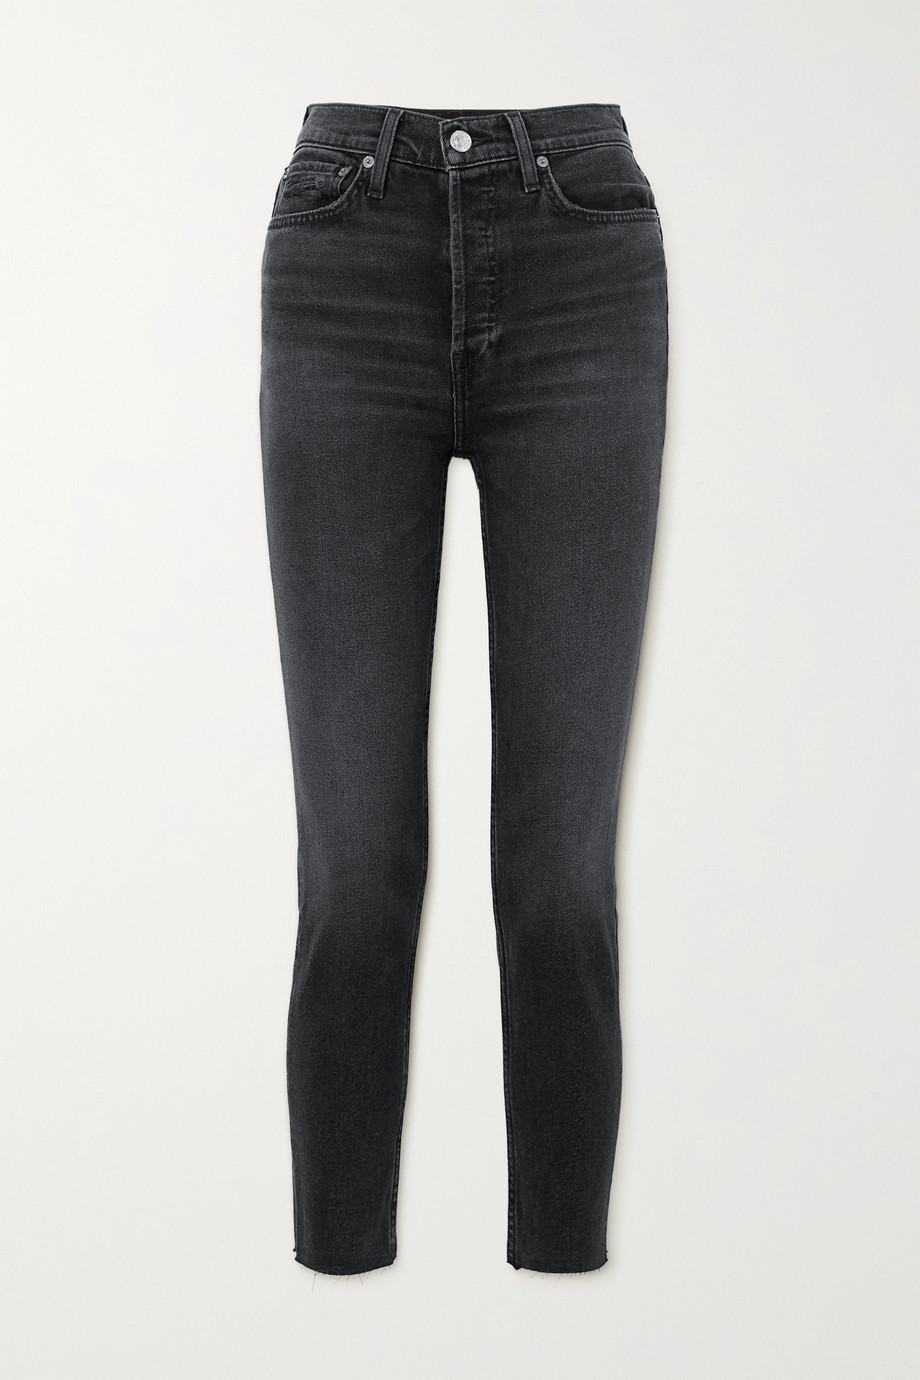 RE/DONE + NET SUSTAIN 90s cropped frayed high-rise skinny jeans